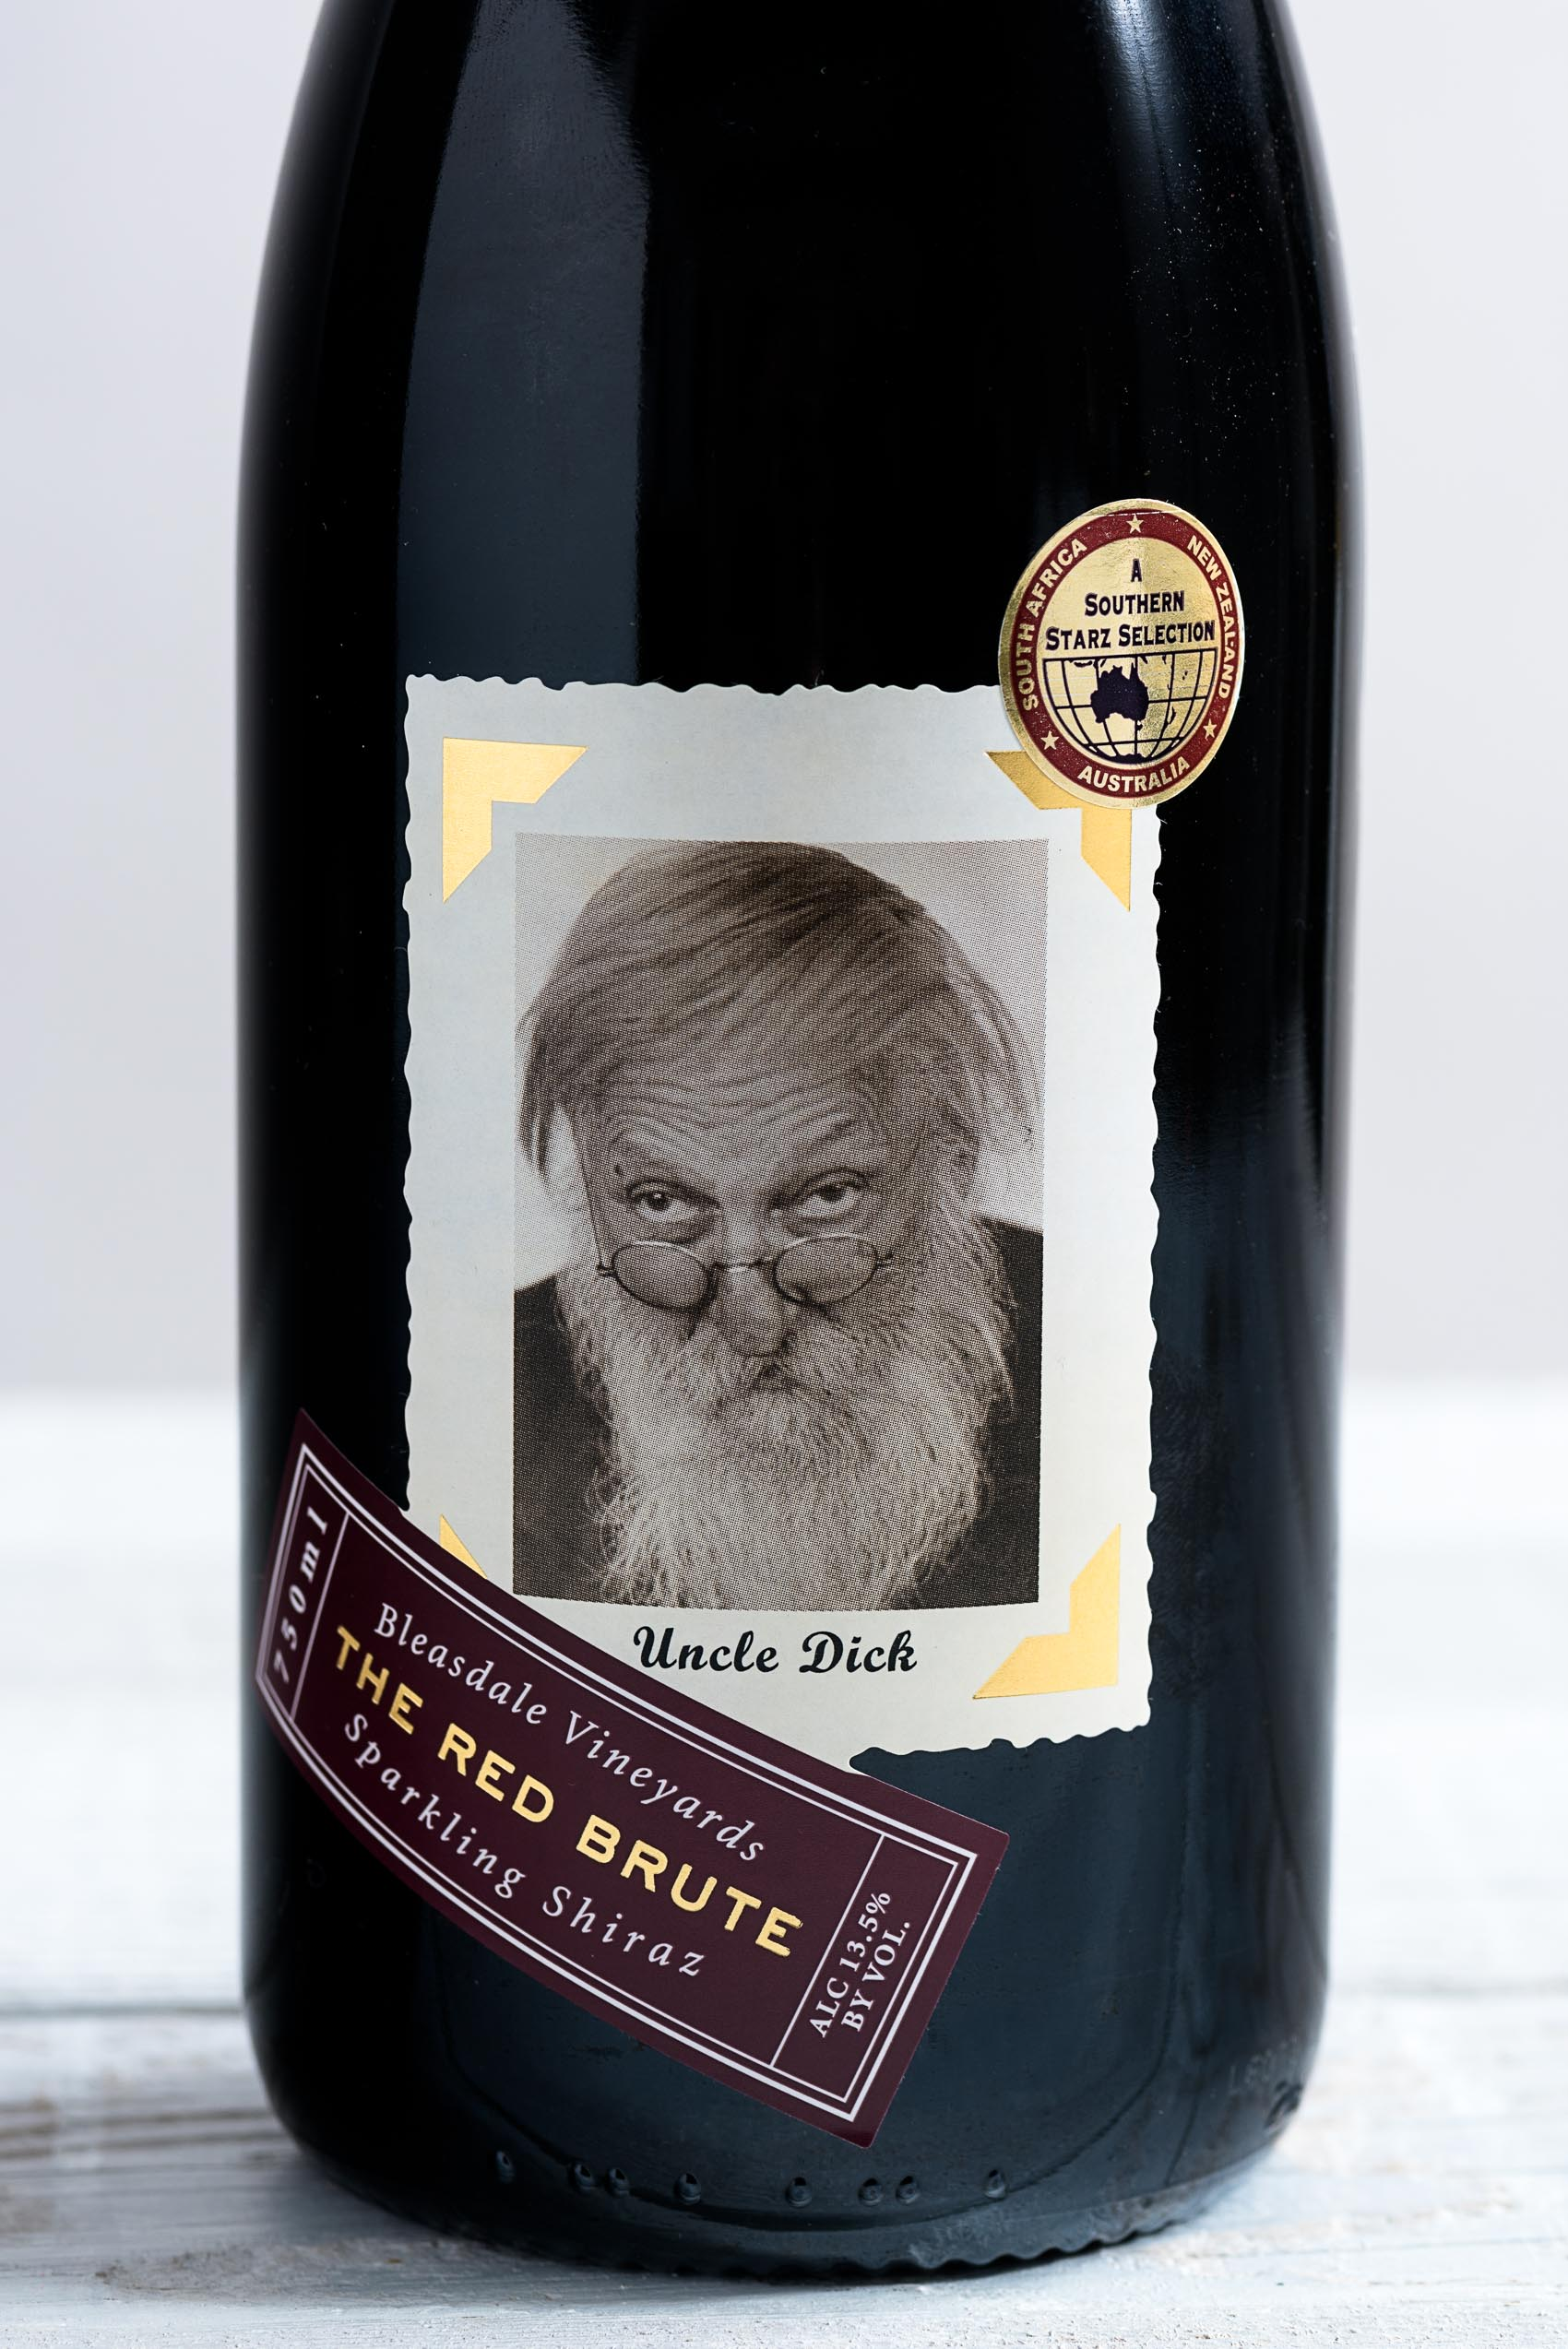 Bleasdale Vineyards The Red Brute Sparkling Shiraz